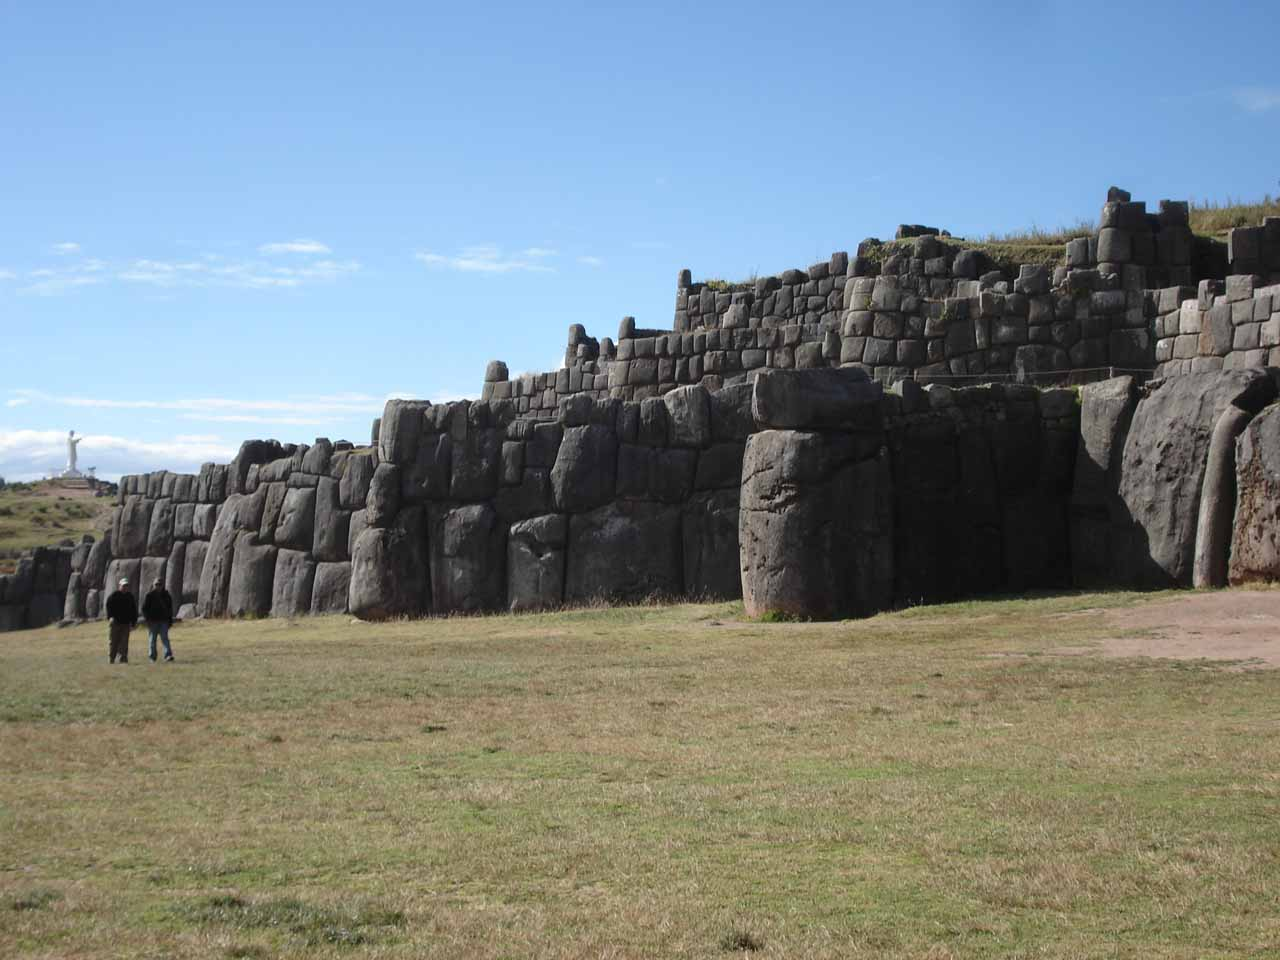 The ancient ruins of Saqsaywaman near the high-altitude town of Cusco, which was where most people would fly into on their way to the Sacred Valley and Machu Picchu